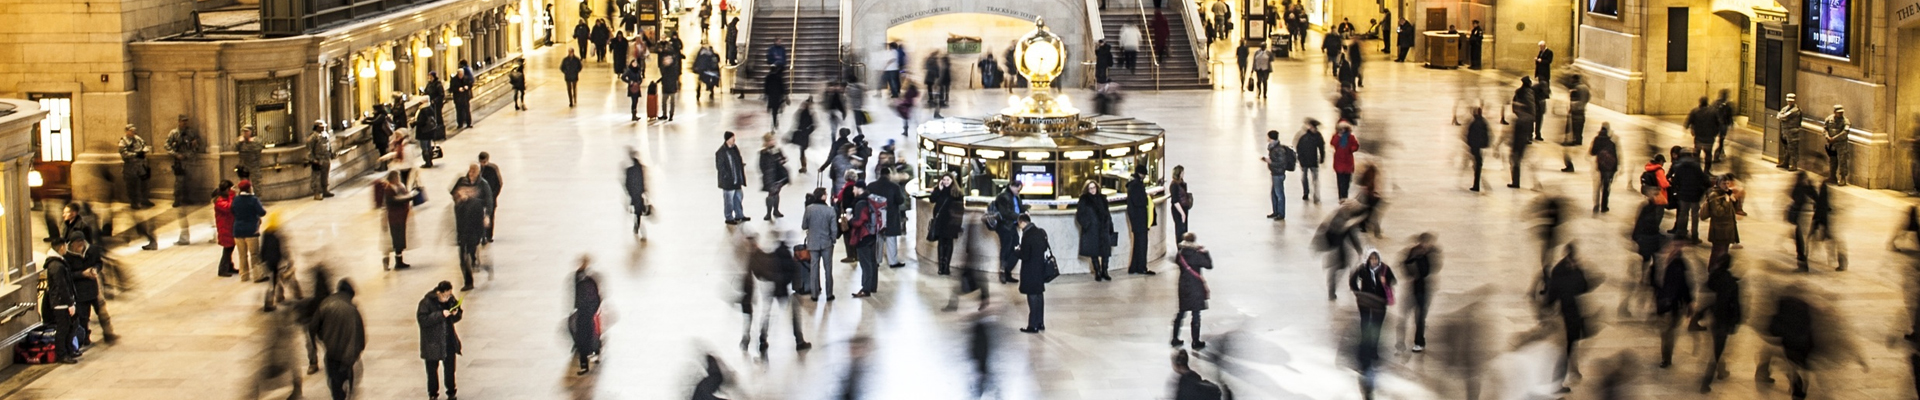 Grand Central Station in New York City with bustling movement of people